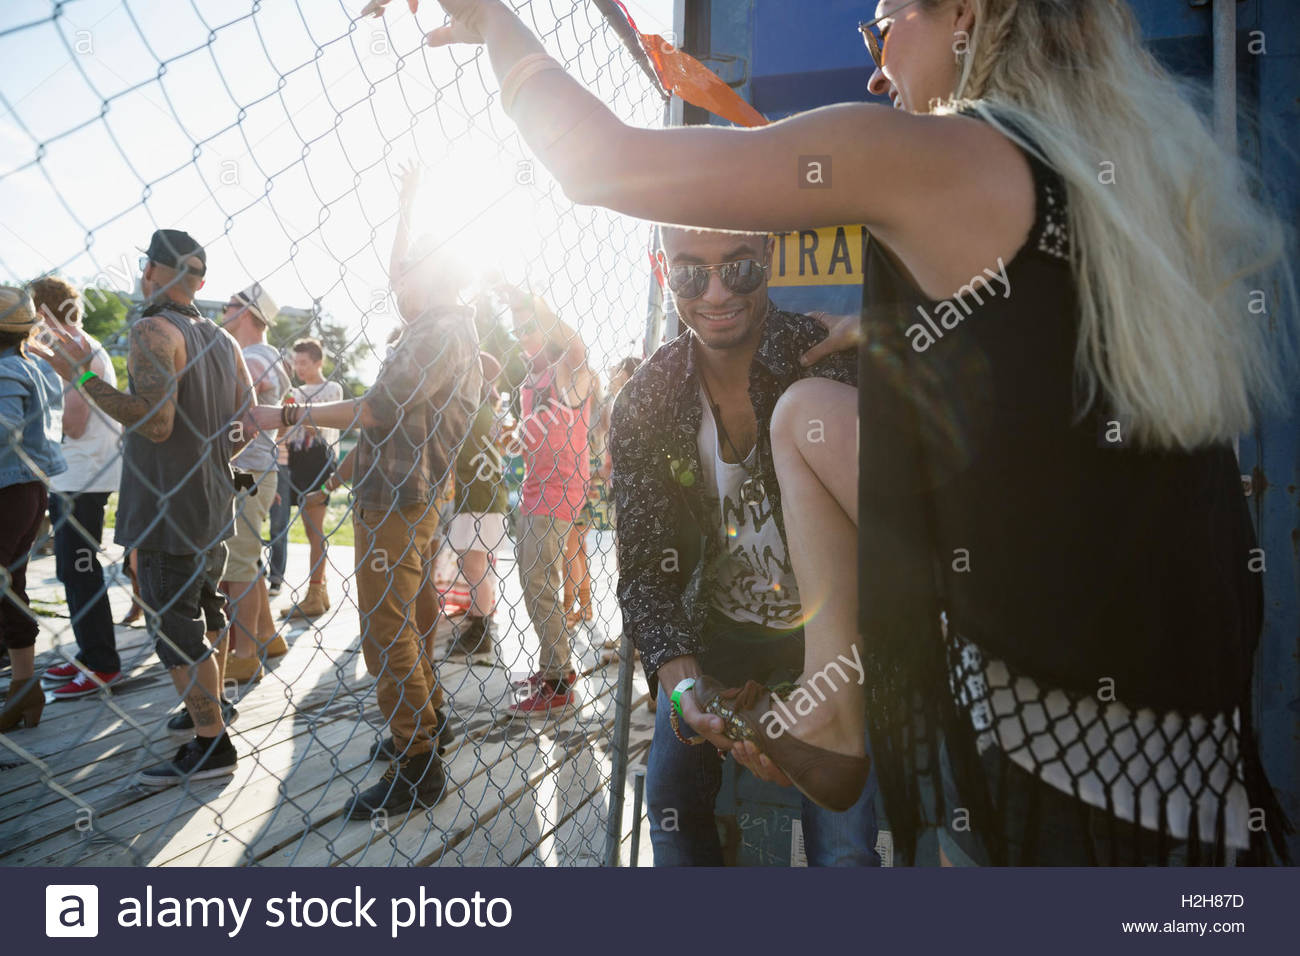 Young man helping woman climb fence at summer music festival - Stock Image